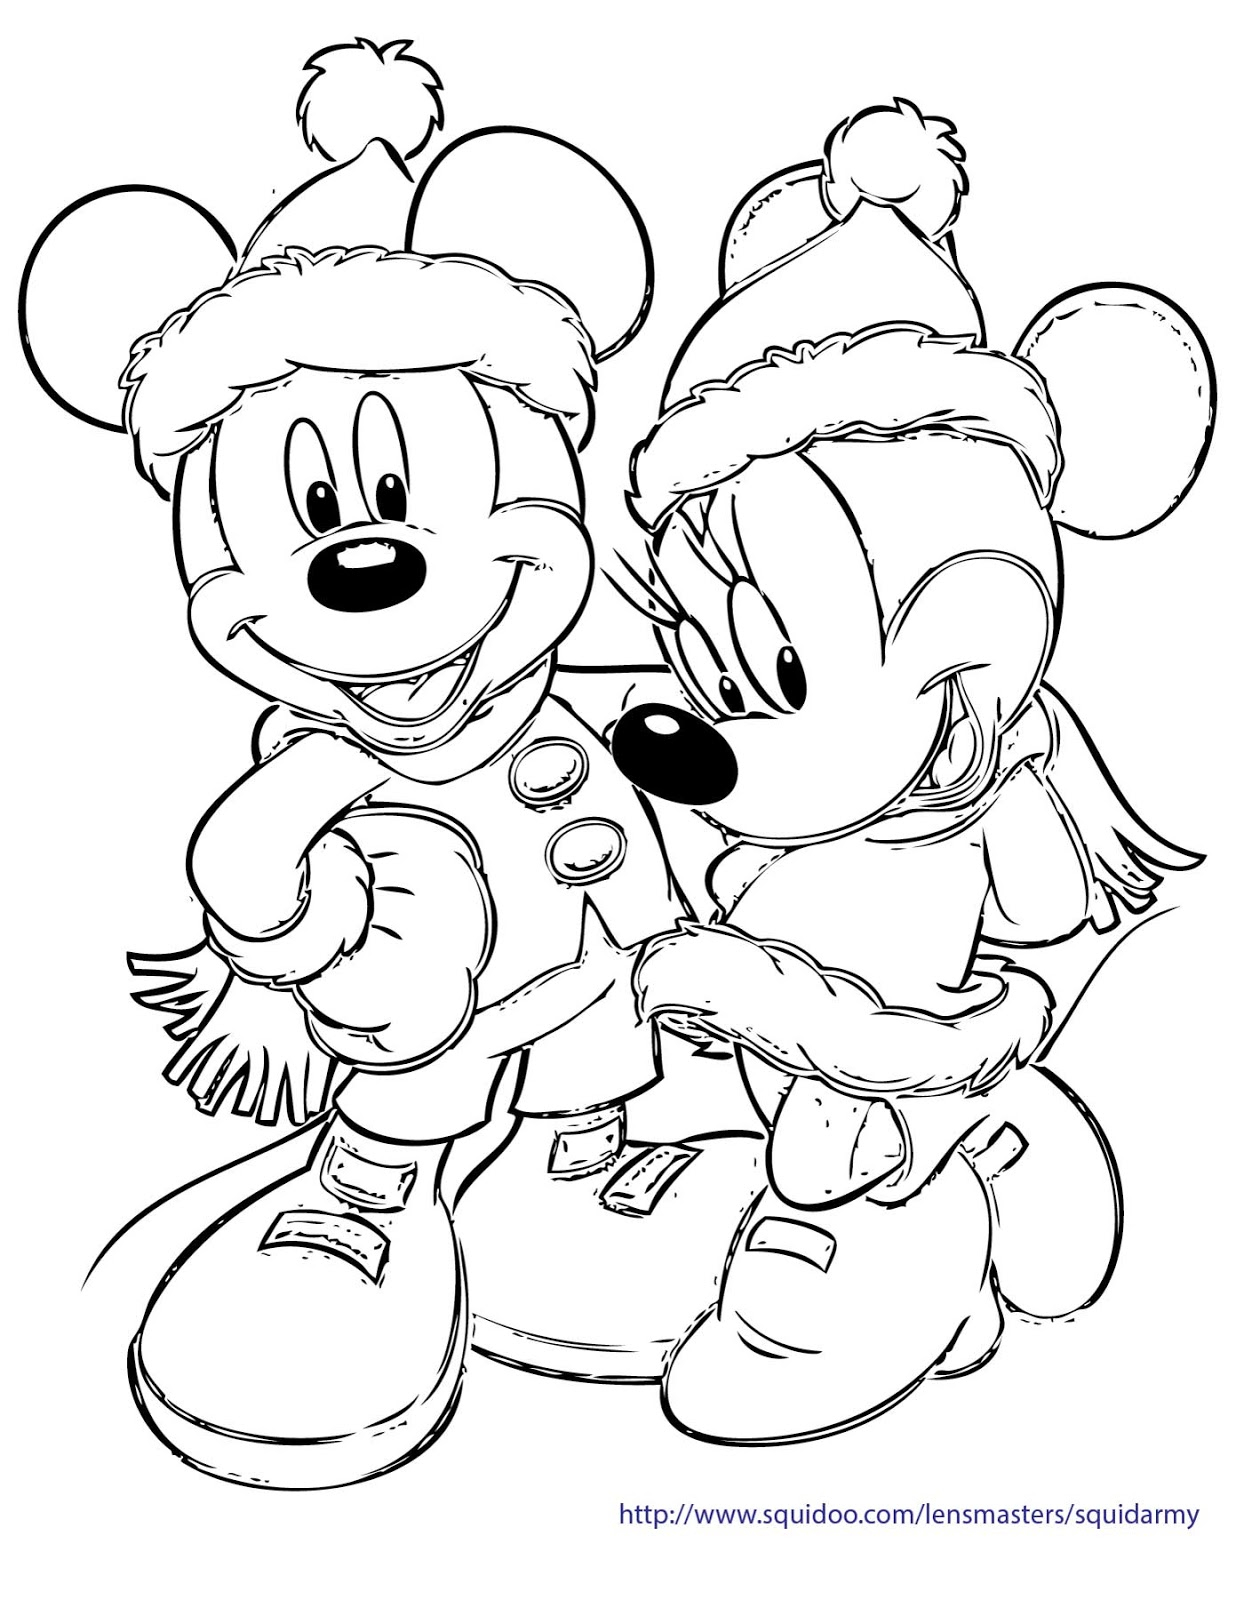 Mickey And Minnie Coloring Pages To Print Princess Mickey Coloring Page Best Free Coloring Pages Site